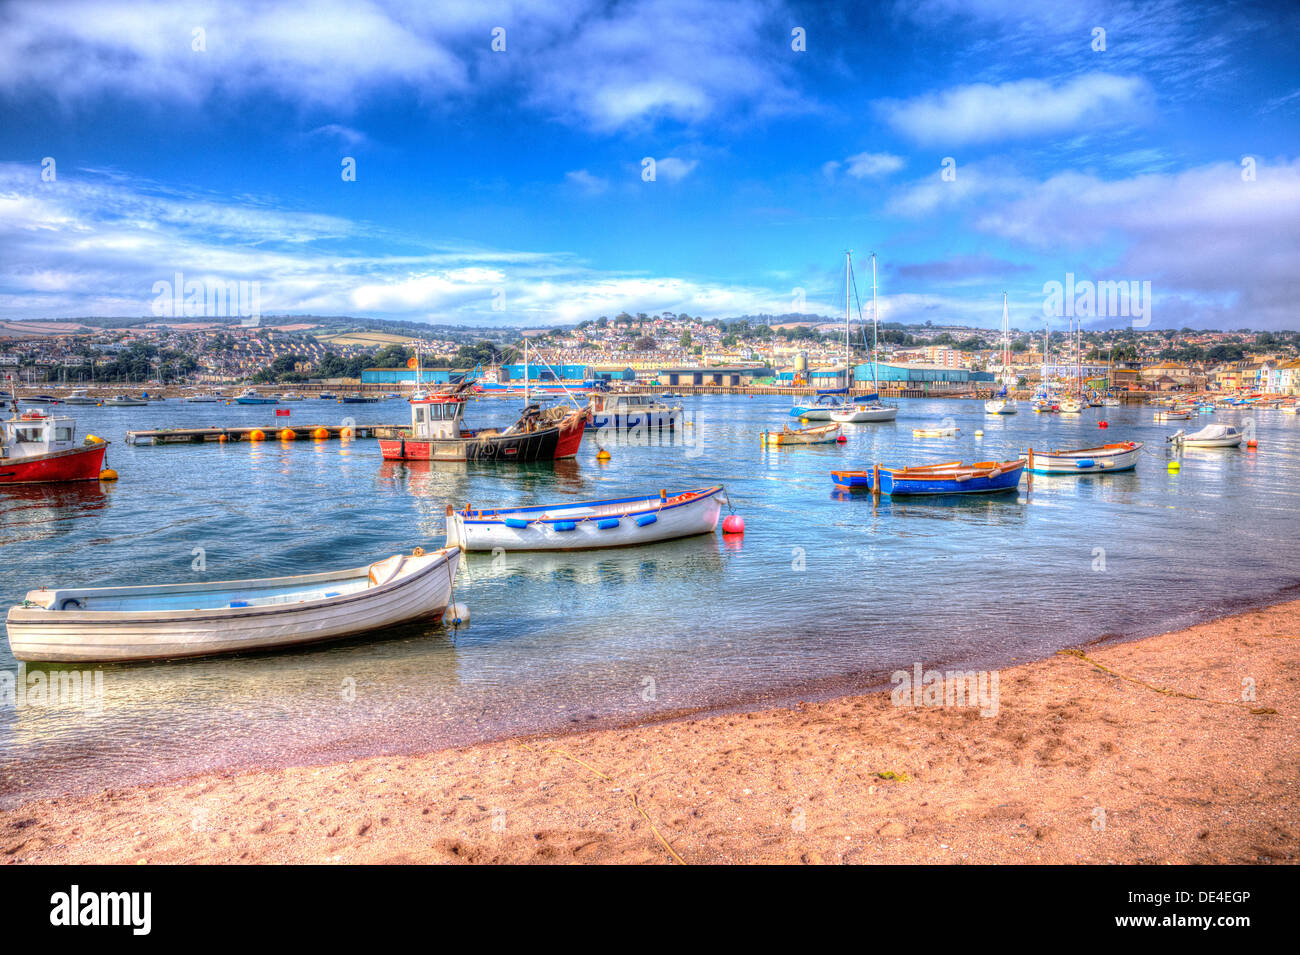 Boats on Teign river Teignmouth Devon with blue sky, English coastal scene in HDR Stock Photo